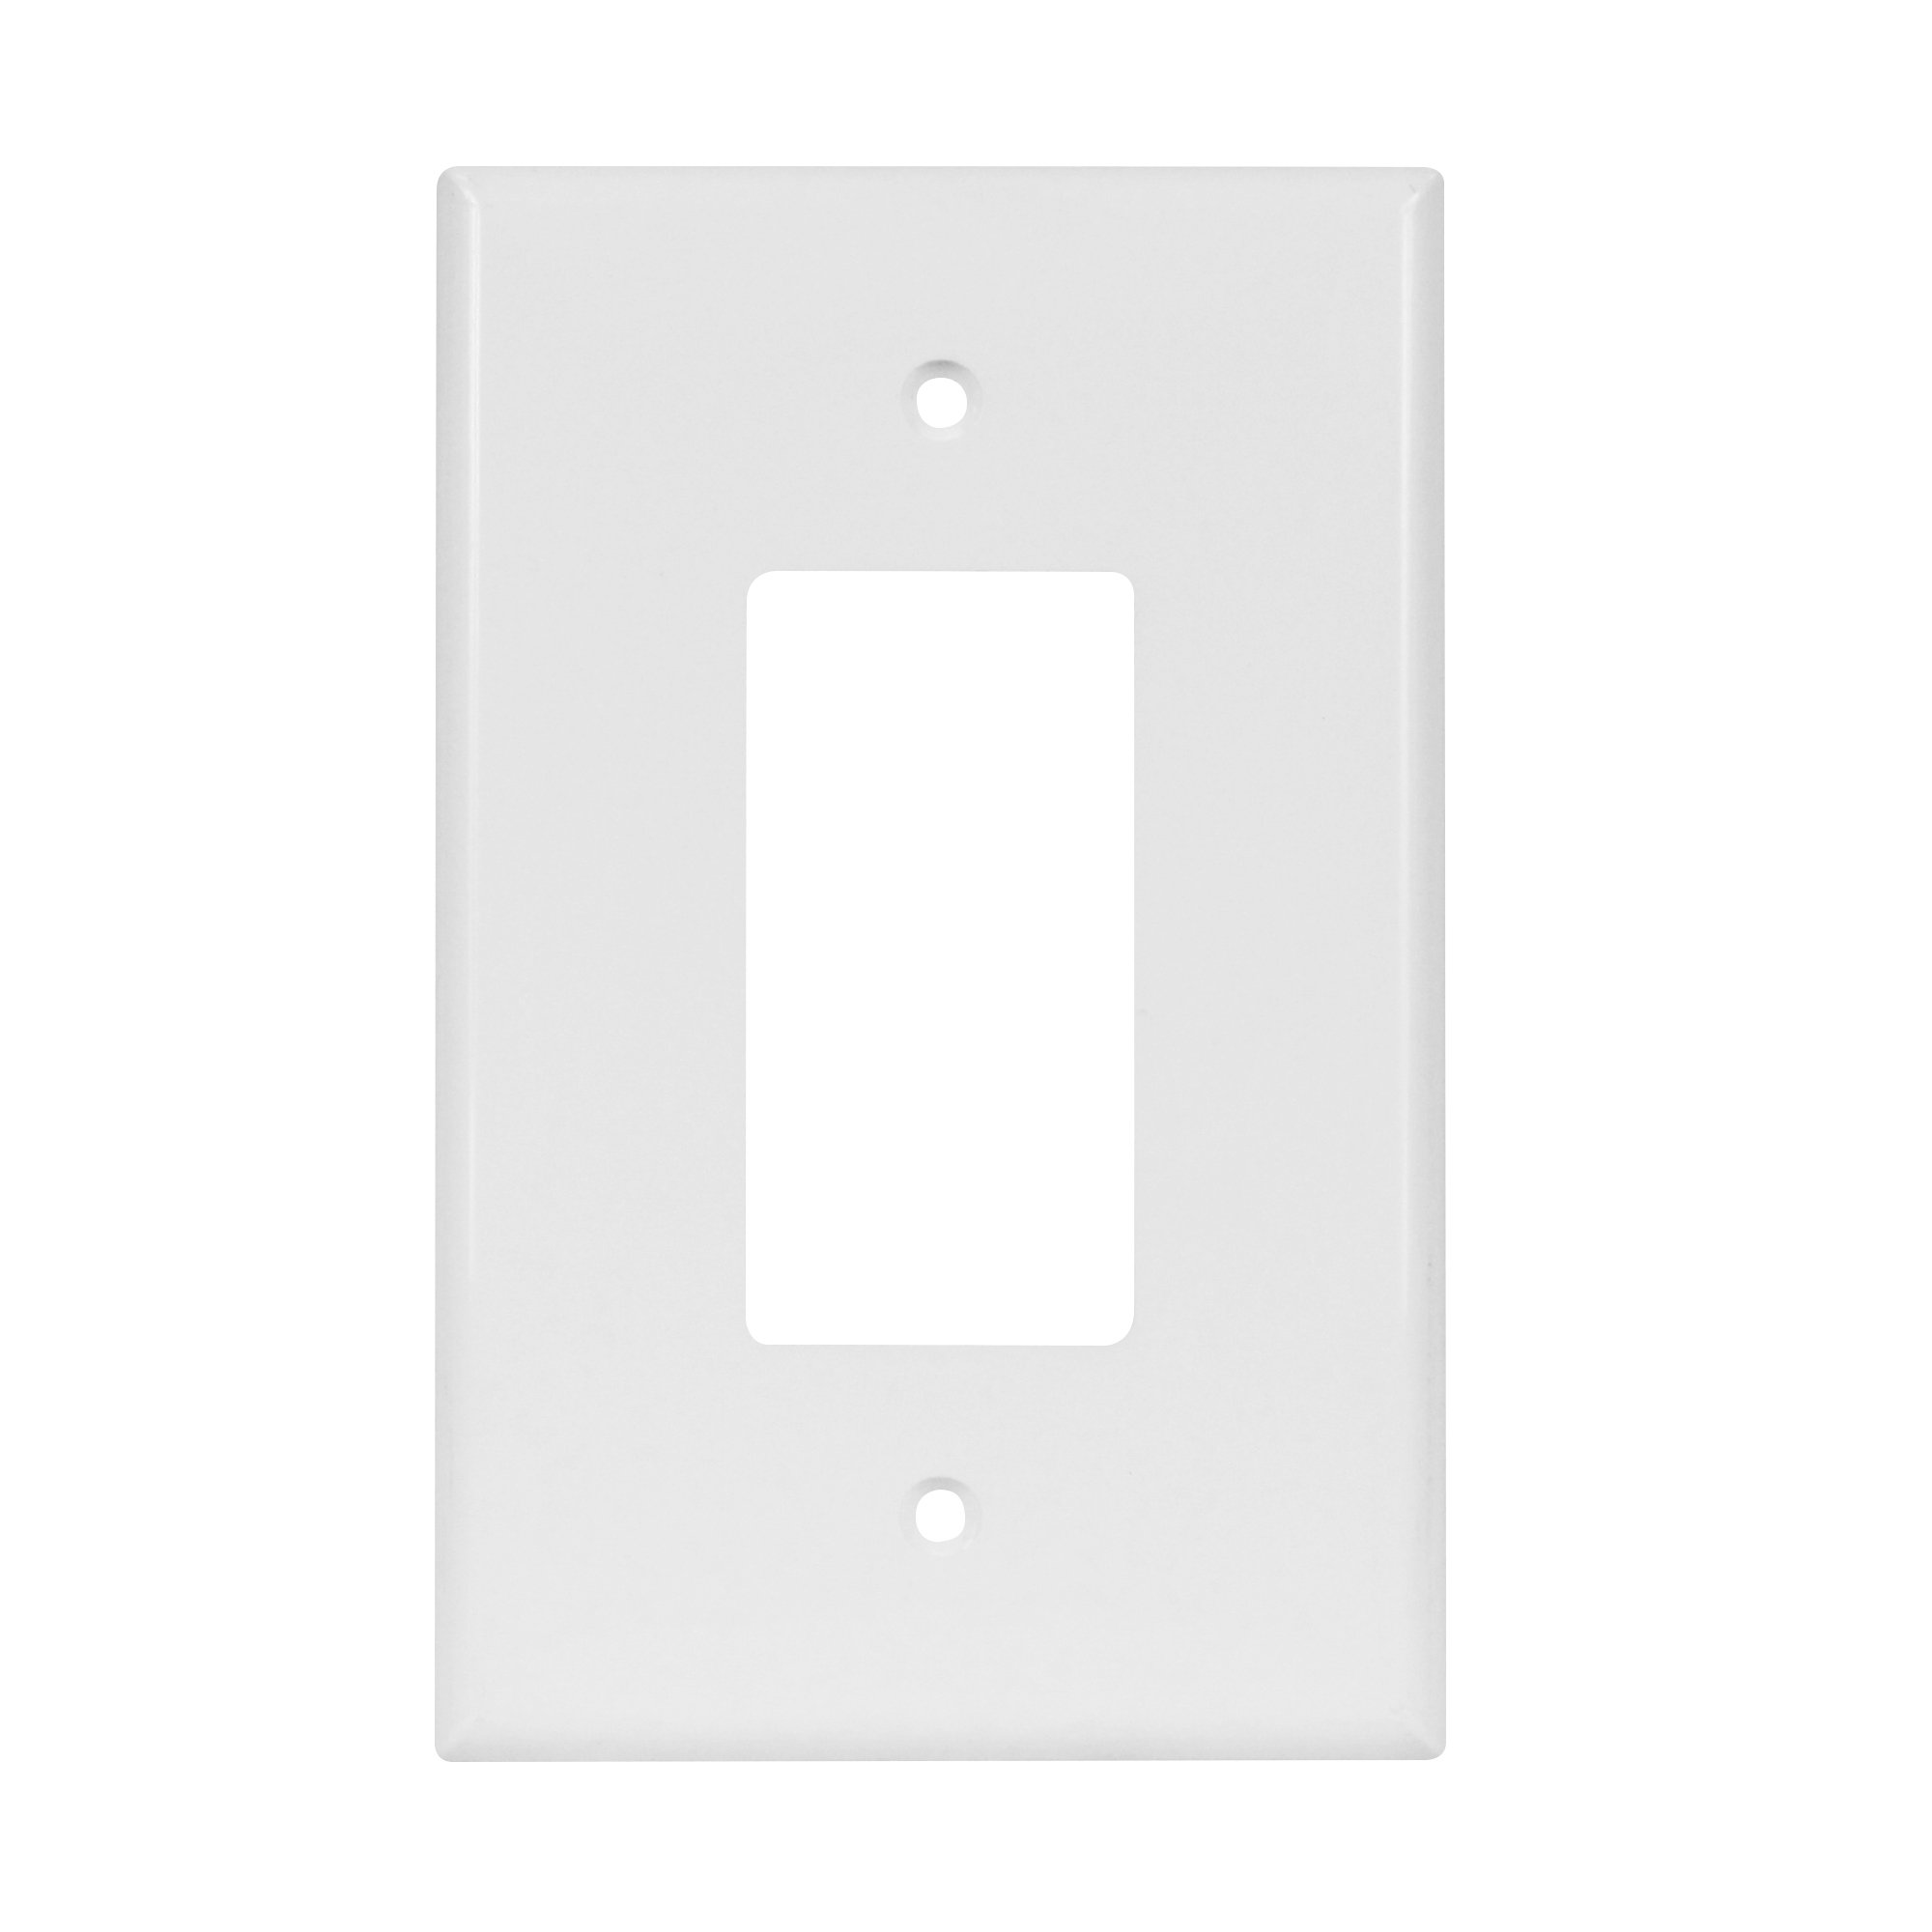 Enerlites 8831O-W Decorator Light Switch/Receptacle Outlet Wall Plate, Over-Size, Polycarbonate Thermoplastic, 1-Gang, White